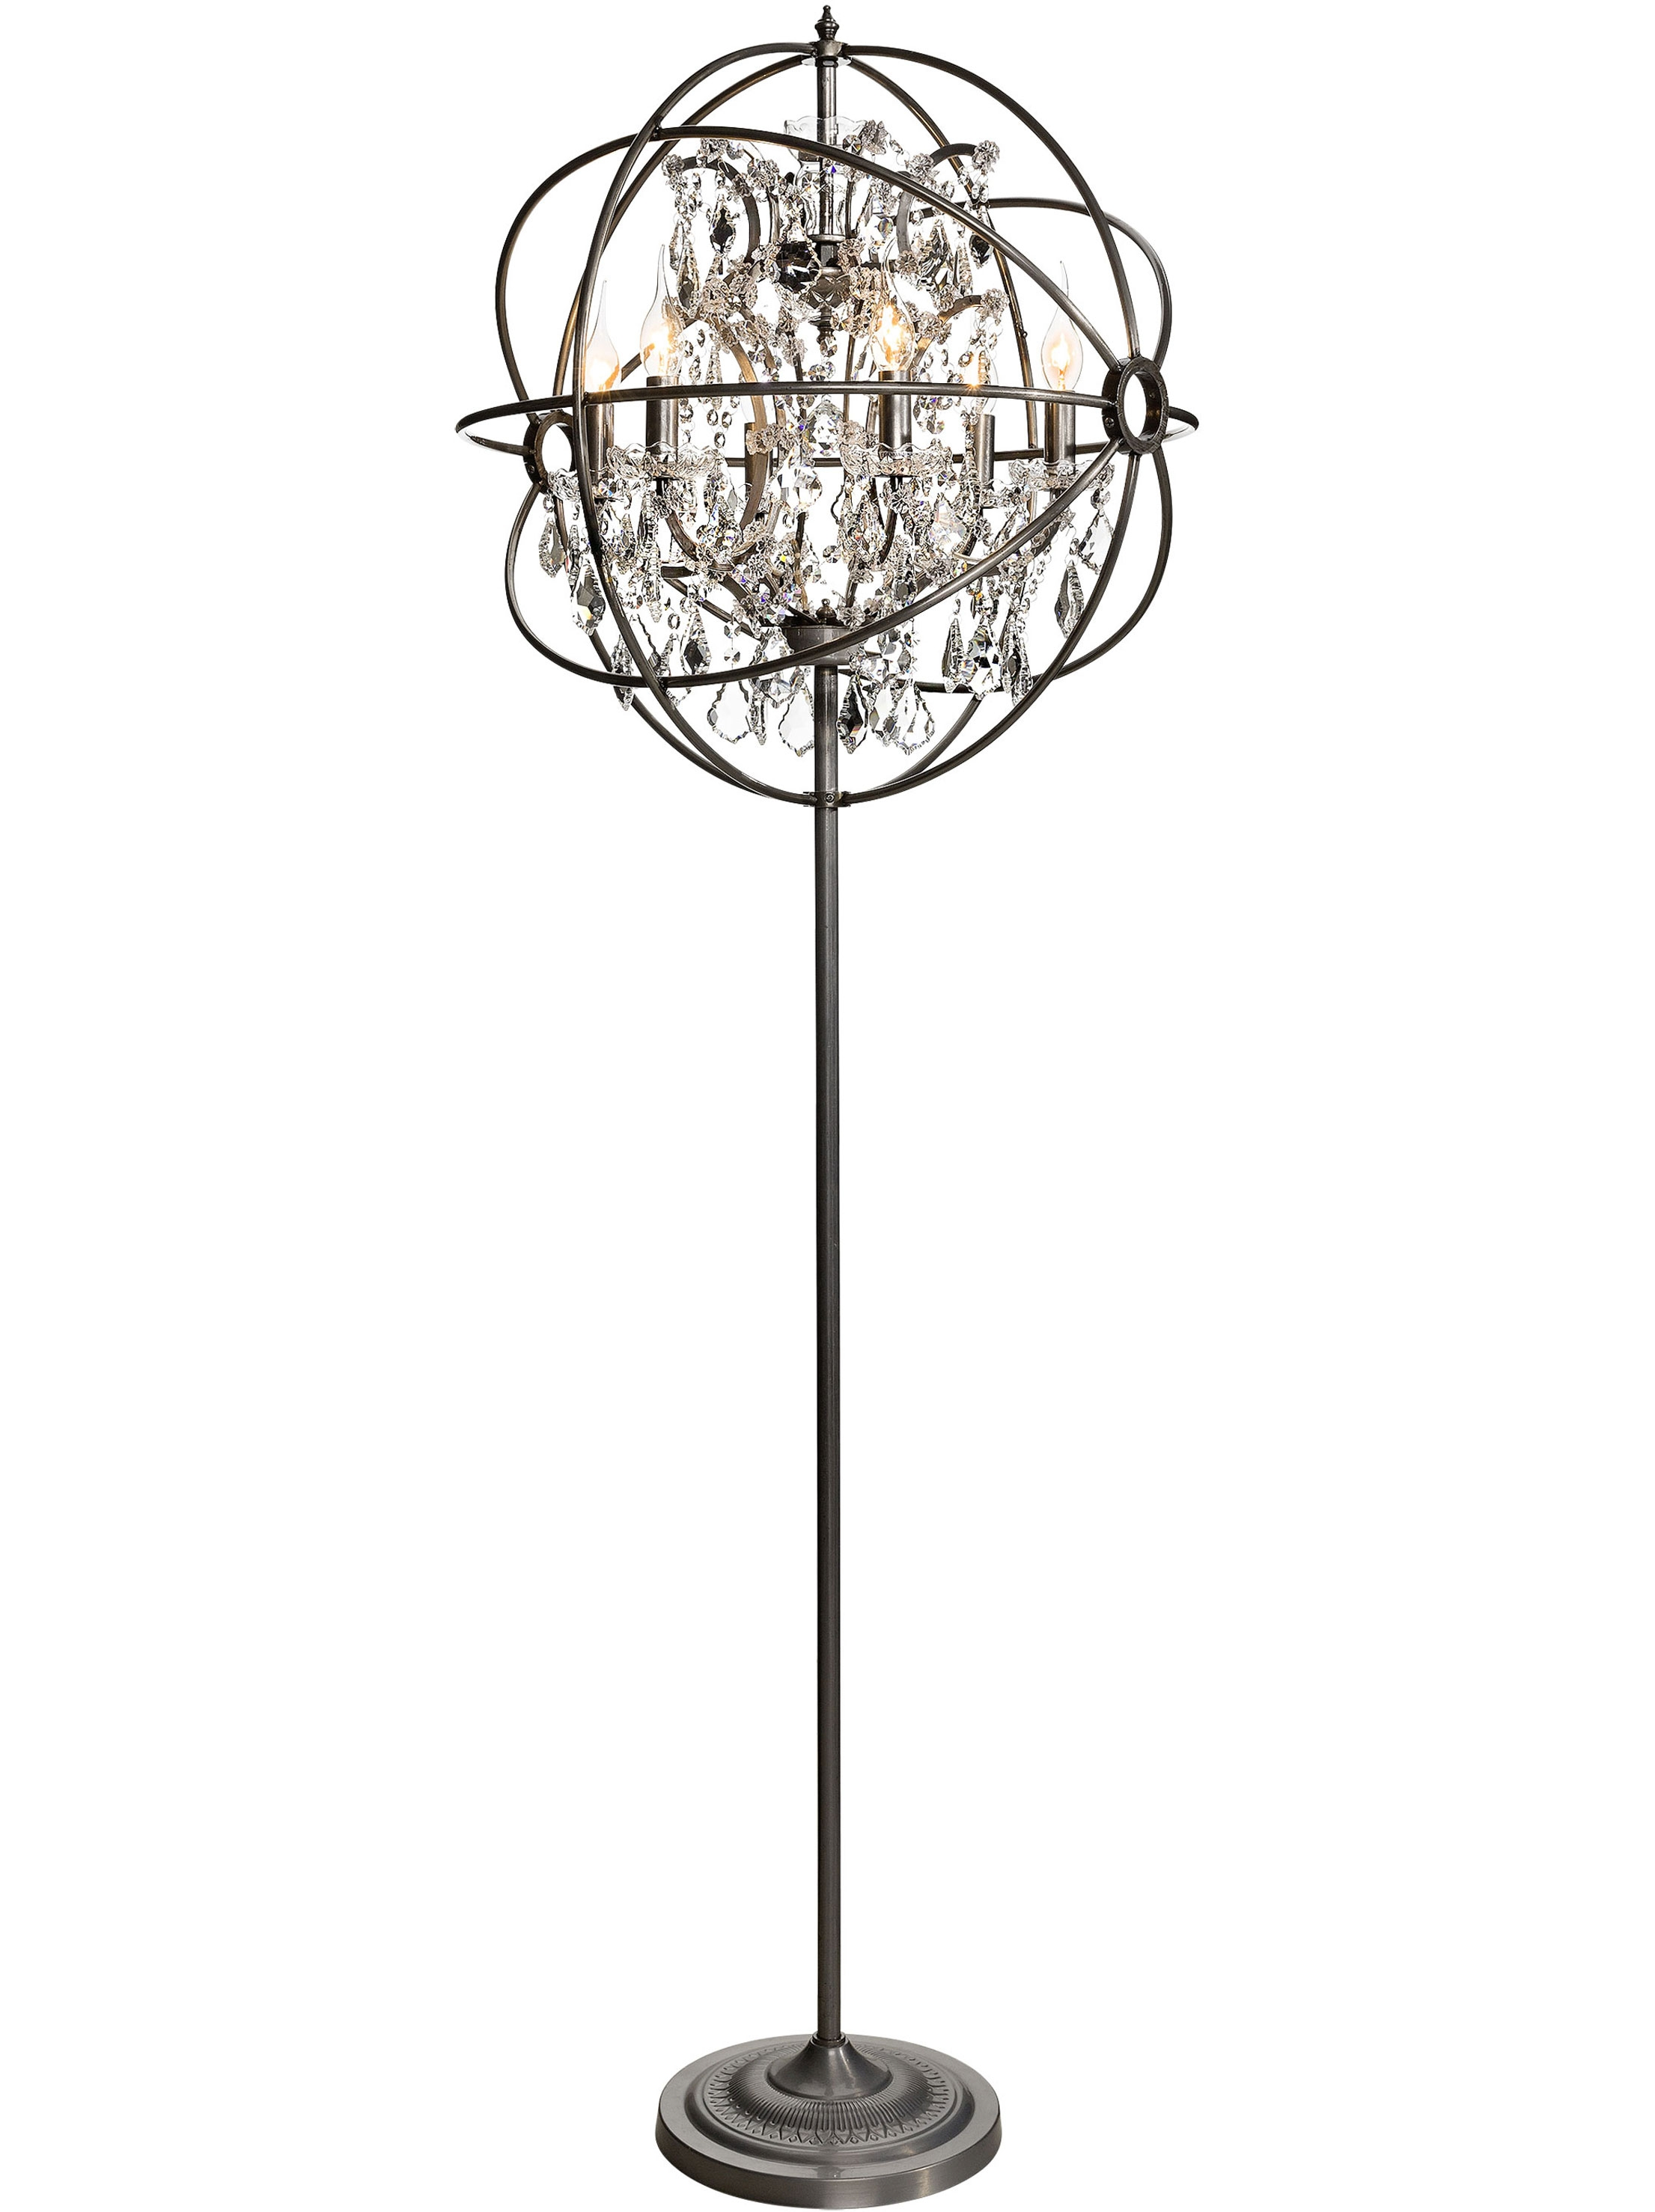 55 Chandelier Floor Lamp Your Home Improvements Refference With Regard To Tall Standing Chandelier Lamps (Image 1 of 25)